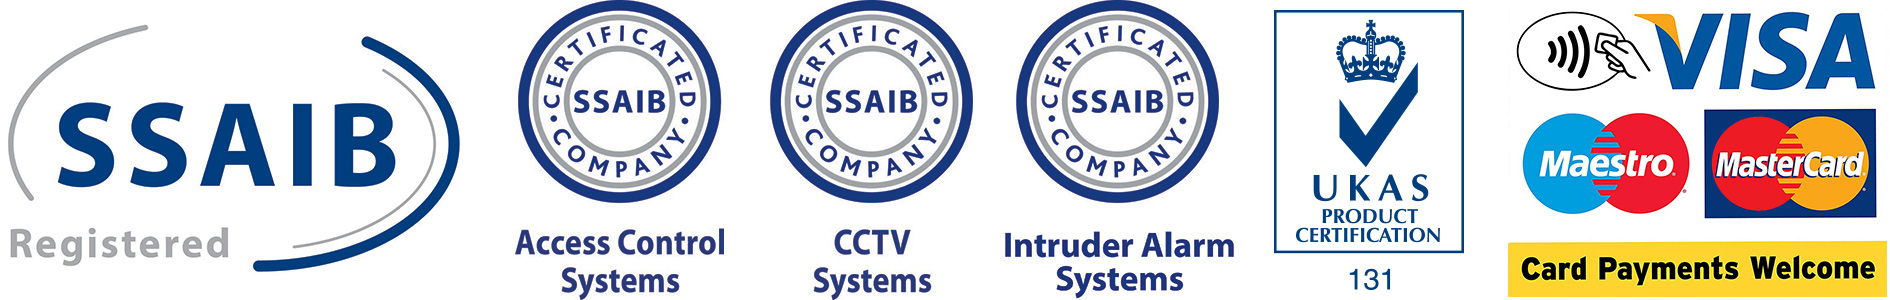 SSAIB Registered